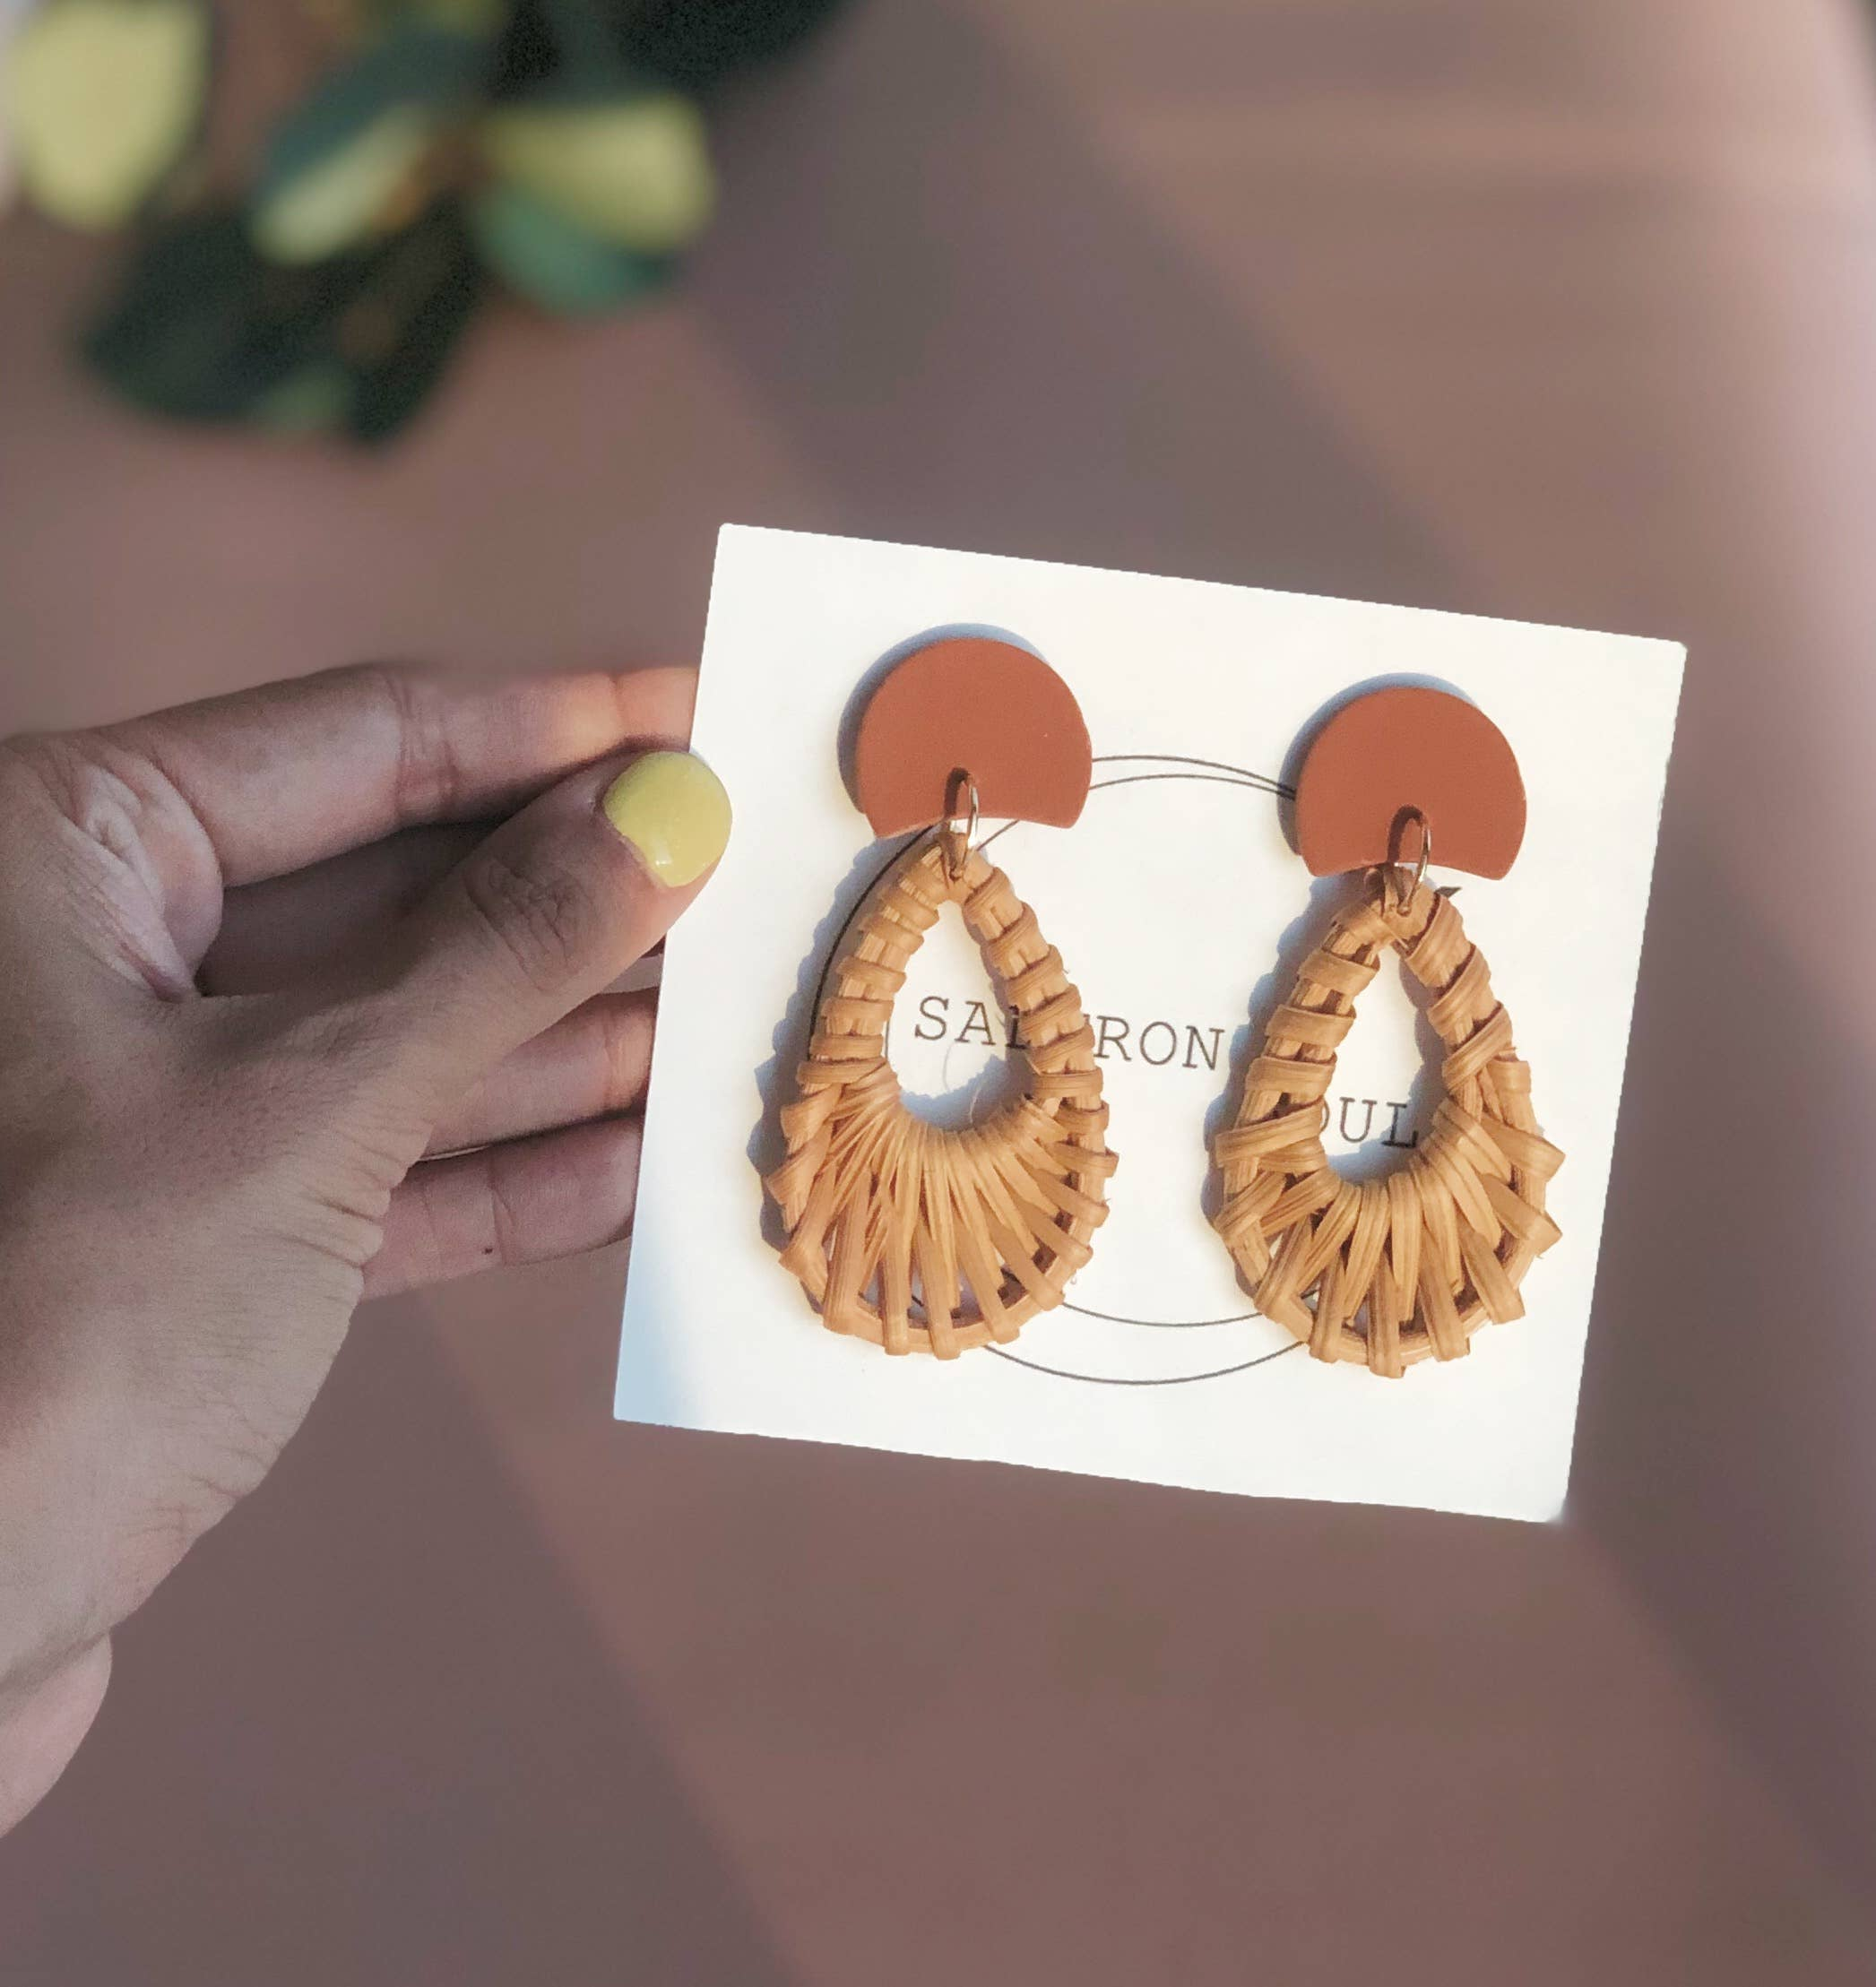 RATTAN + CLAY | Half Moon Teardrop Dangles, Saffron Soul Collective, Handcrafted Home Goods and Gifts